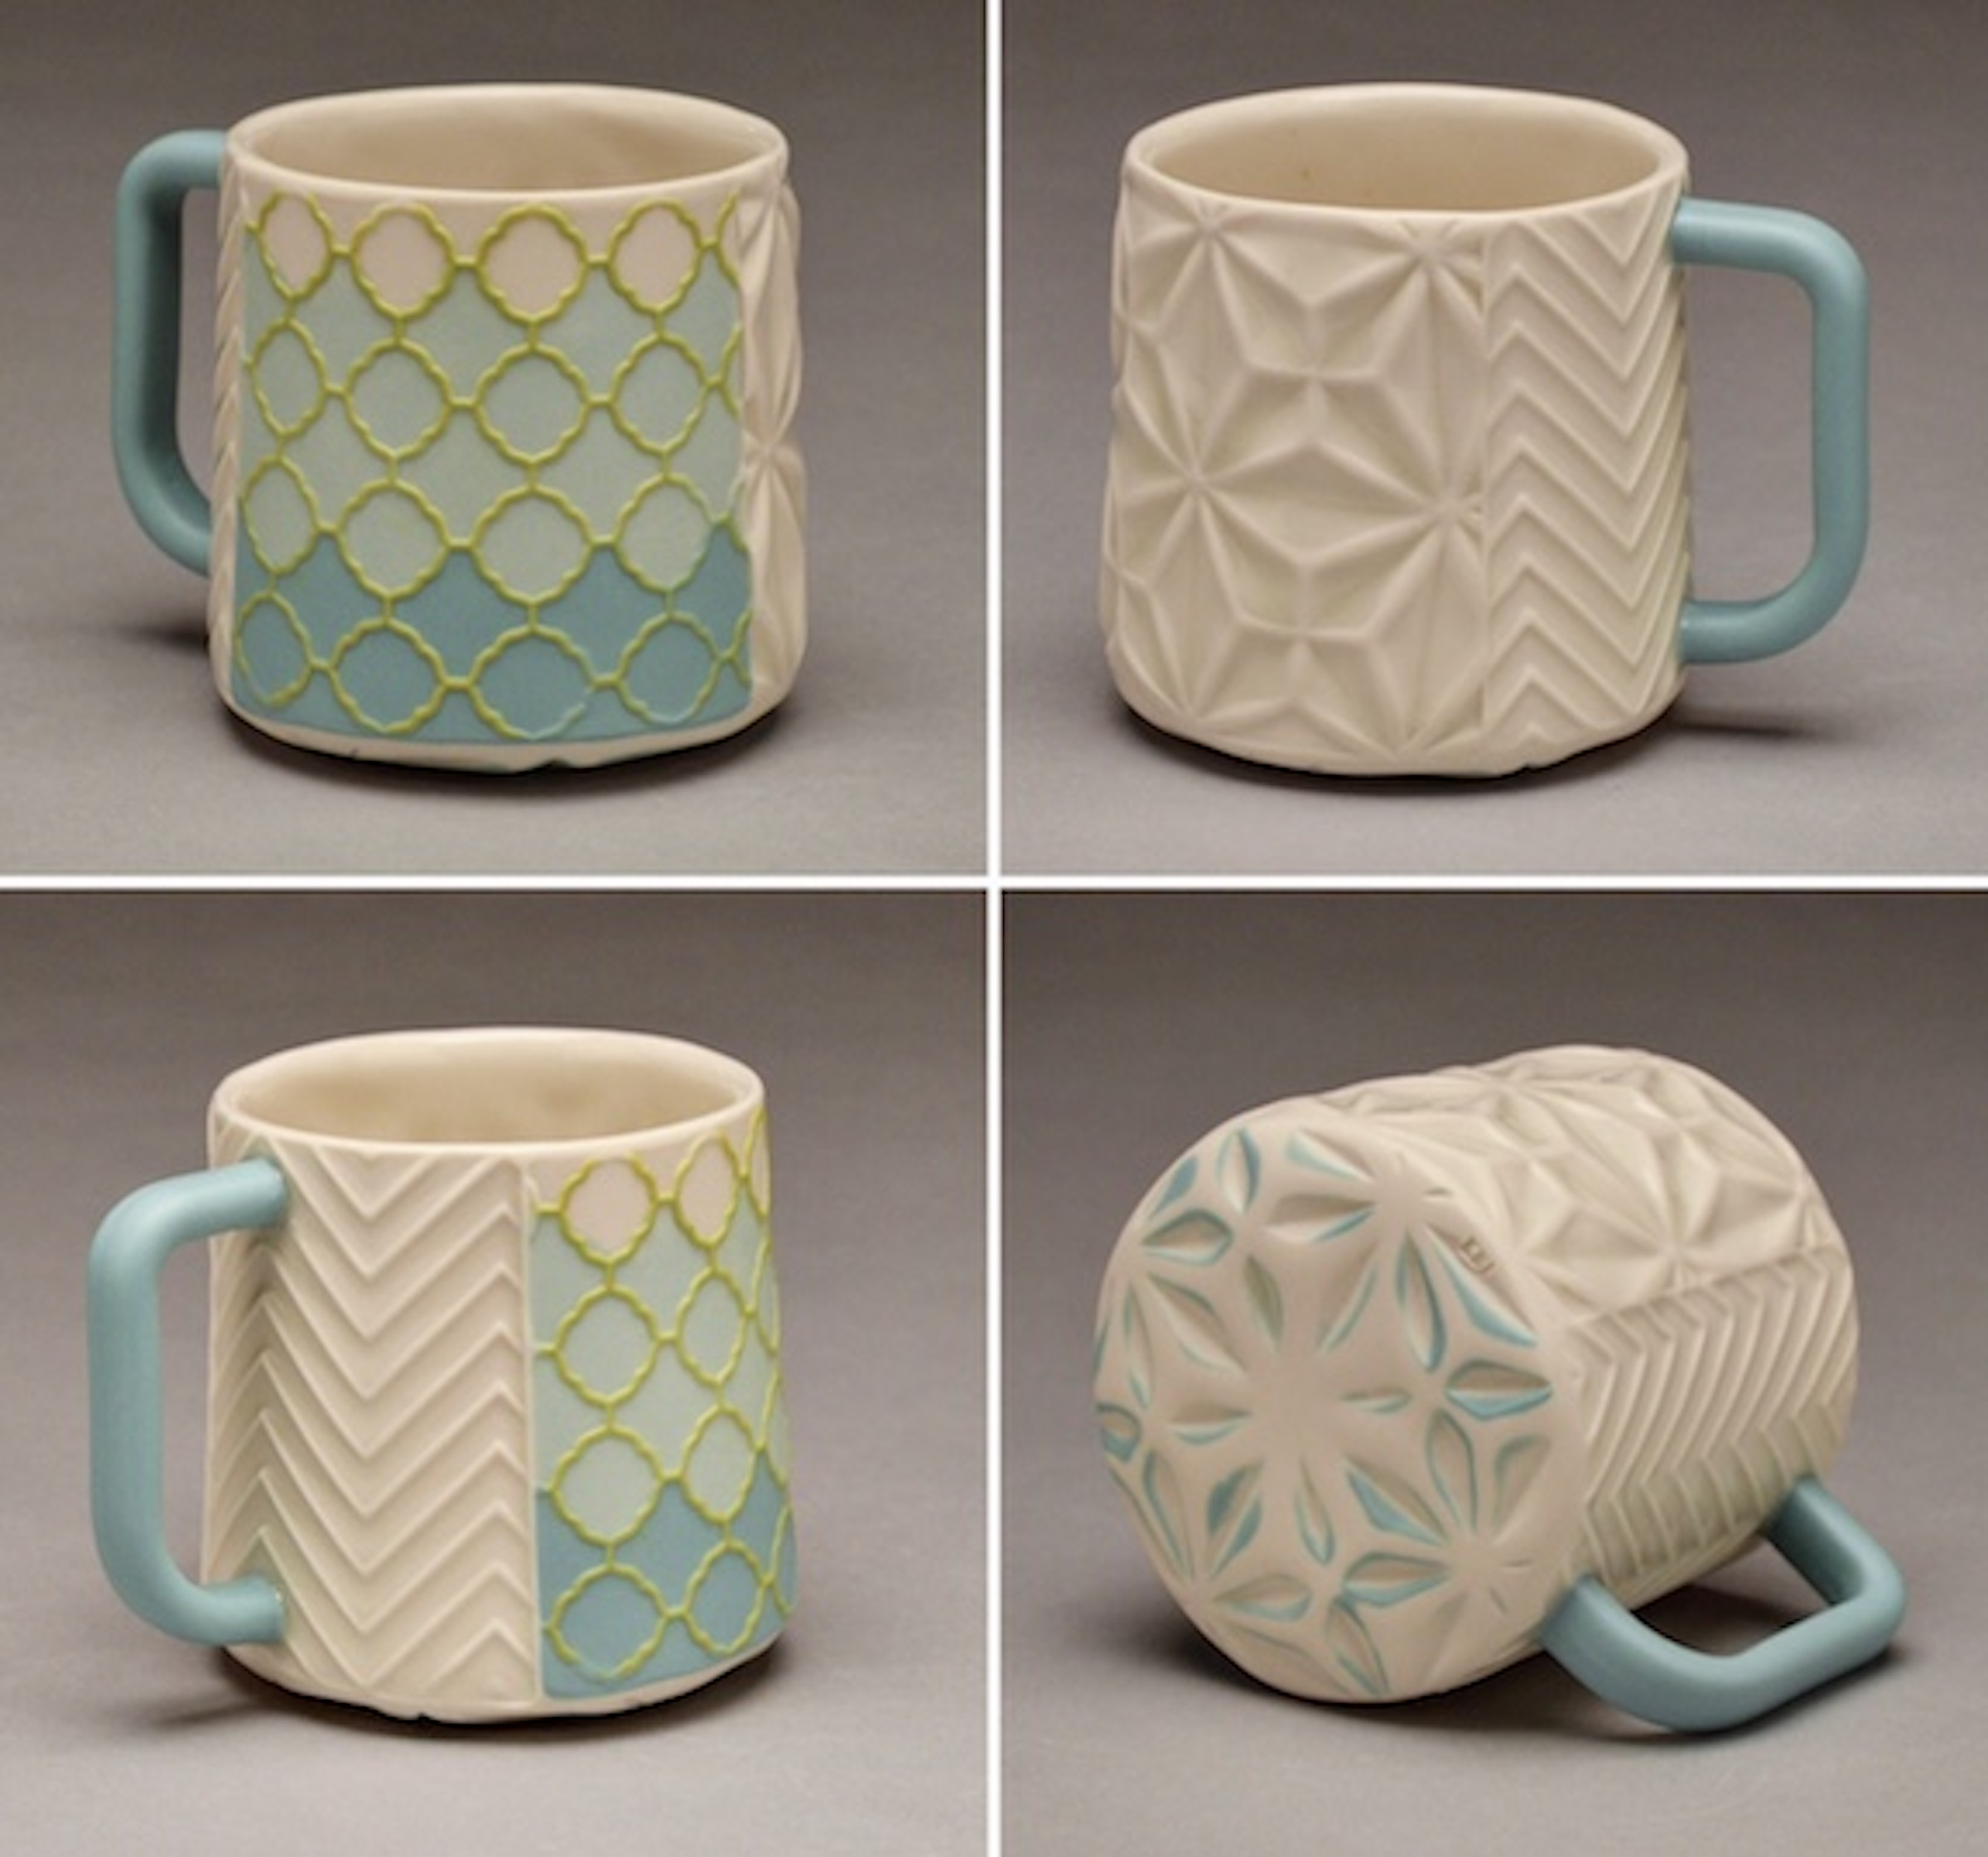 Turquoise and White Mug.jpg